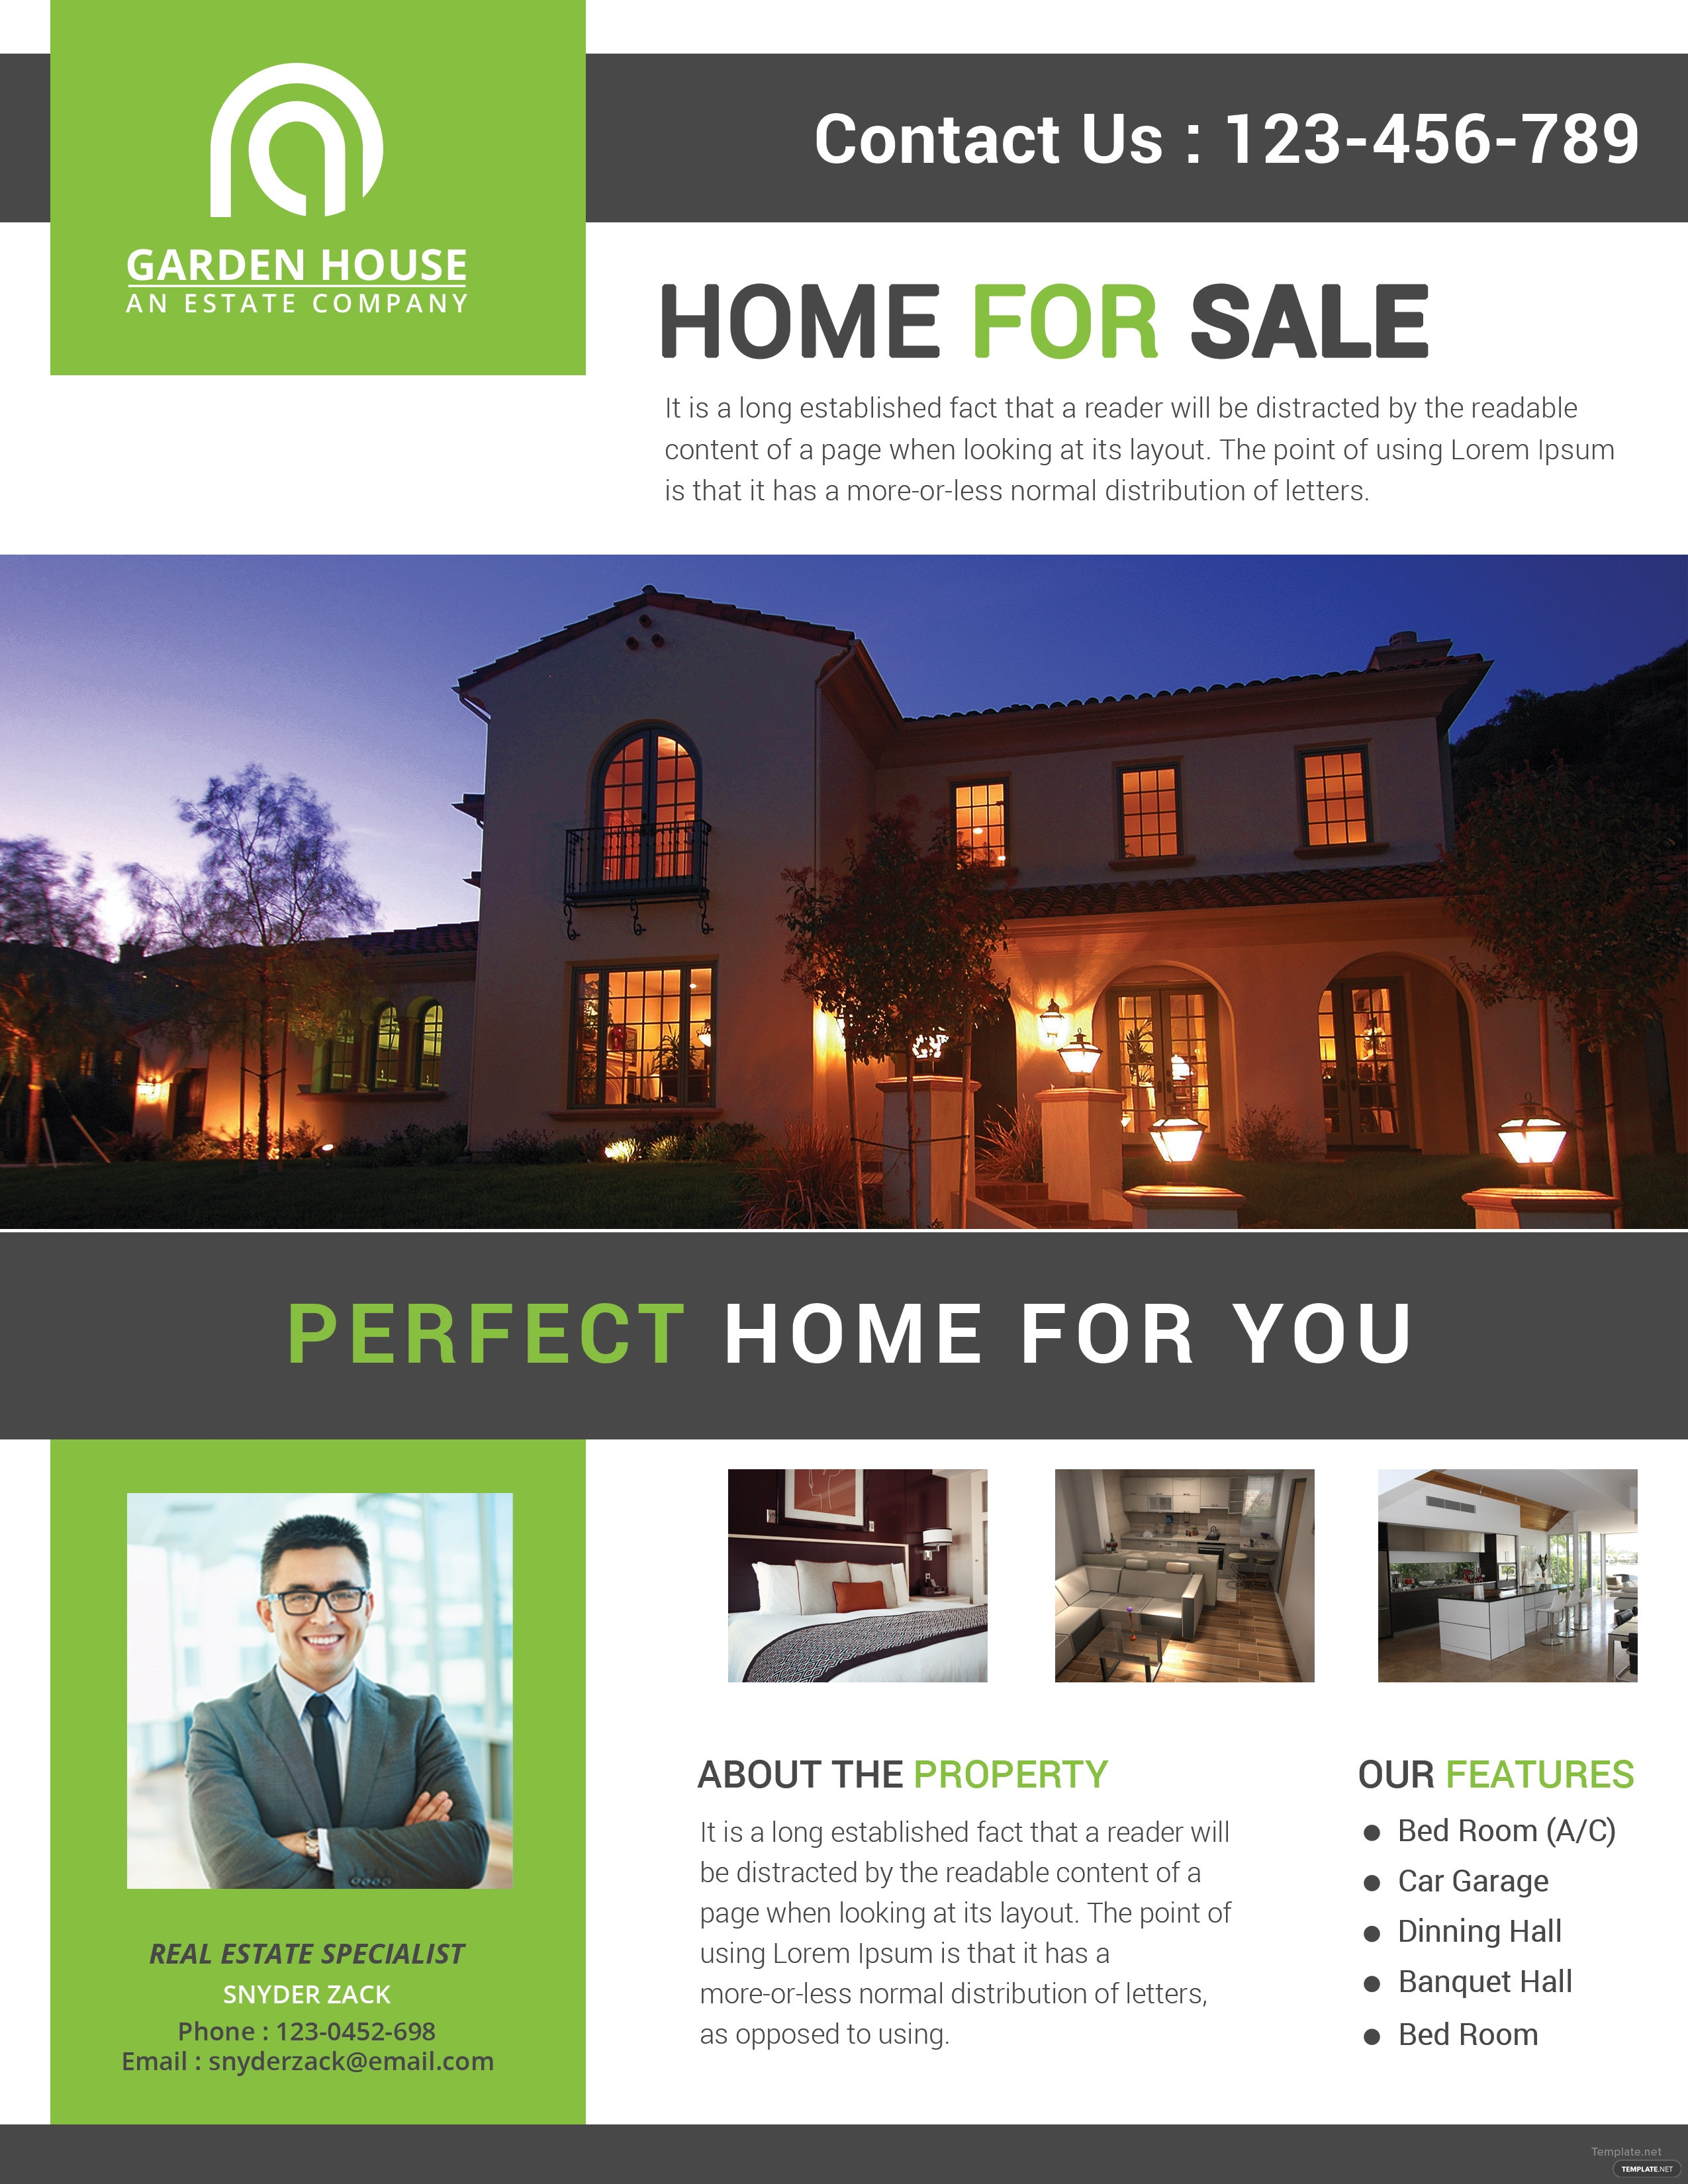 home sale real estate flyer template in adobe photoshop  illustrator  microsoft word  publisher